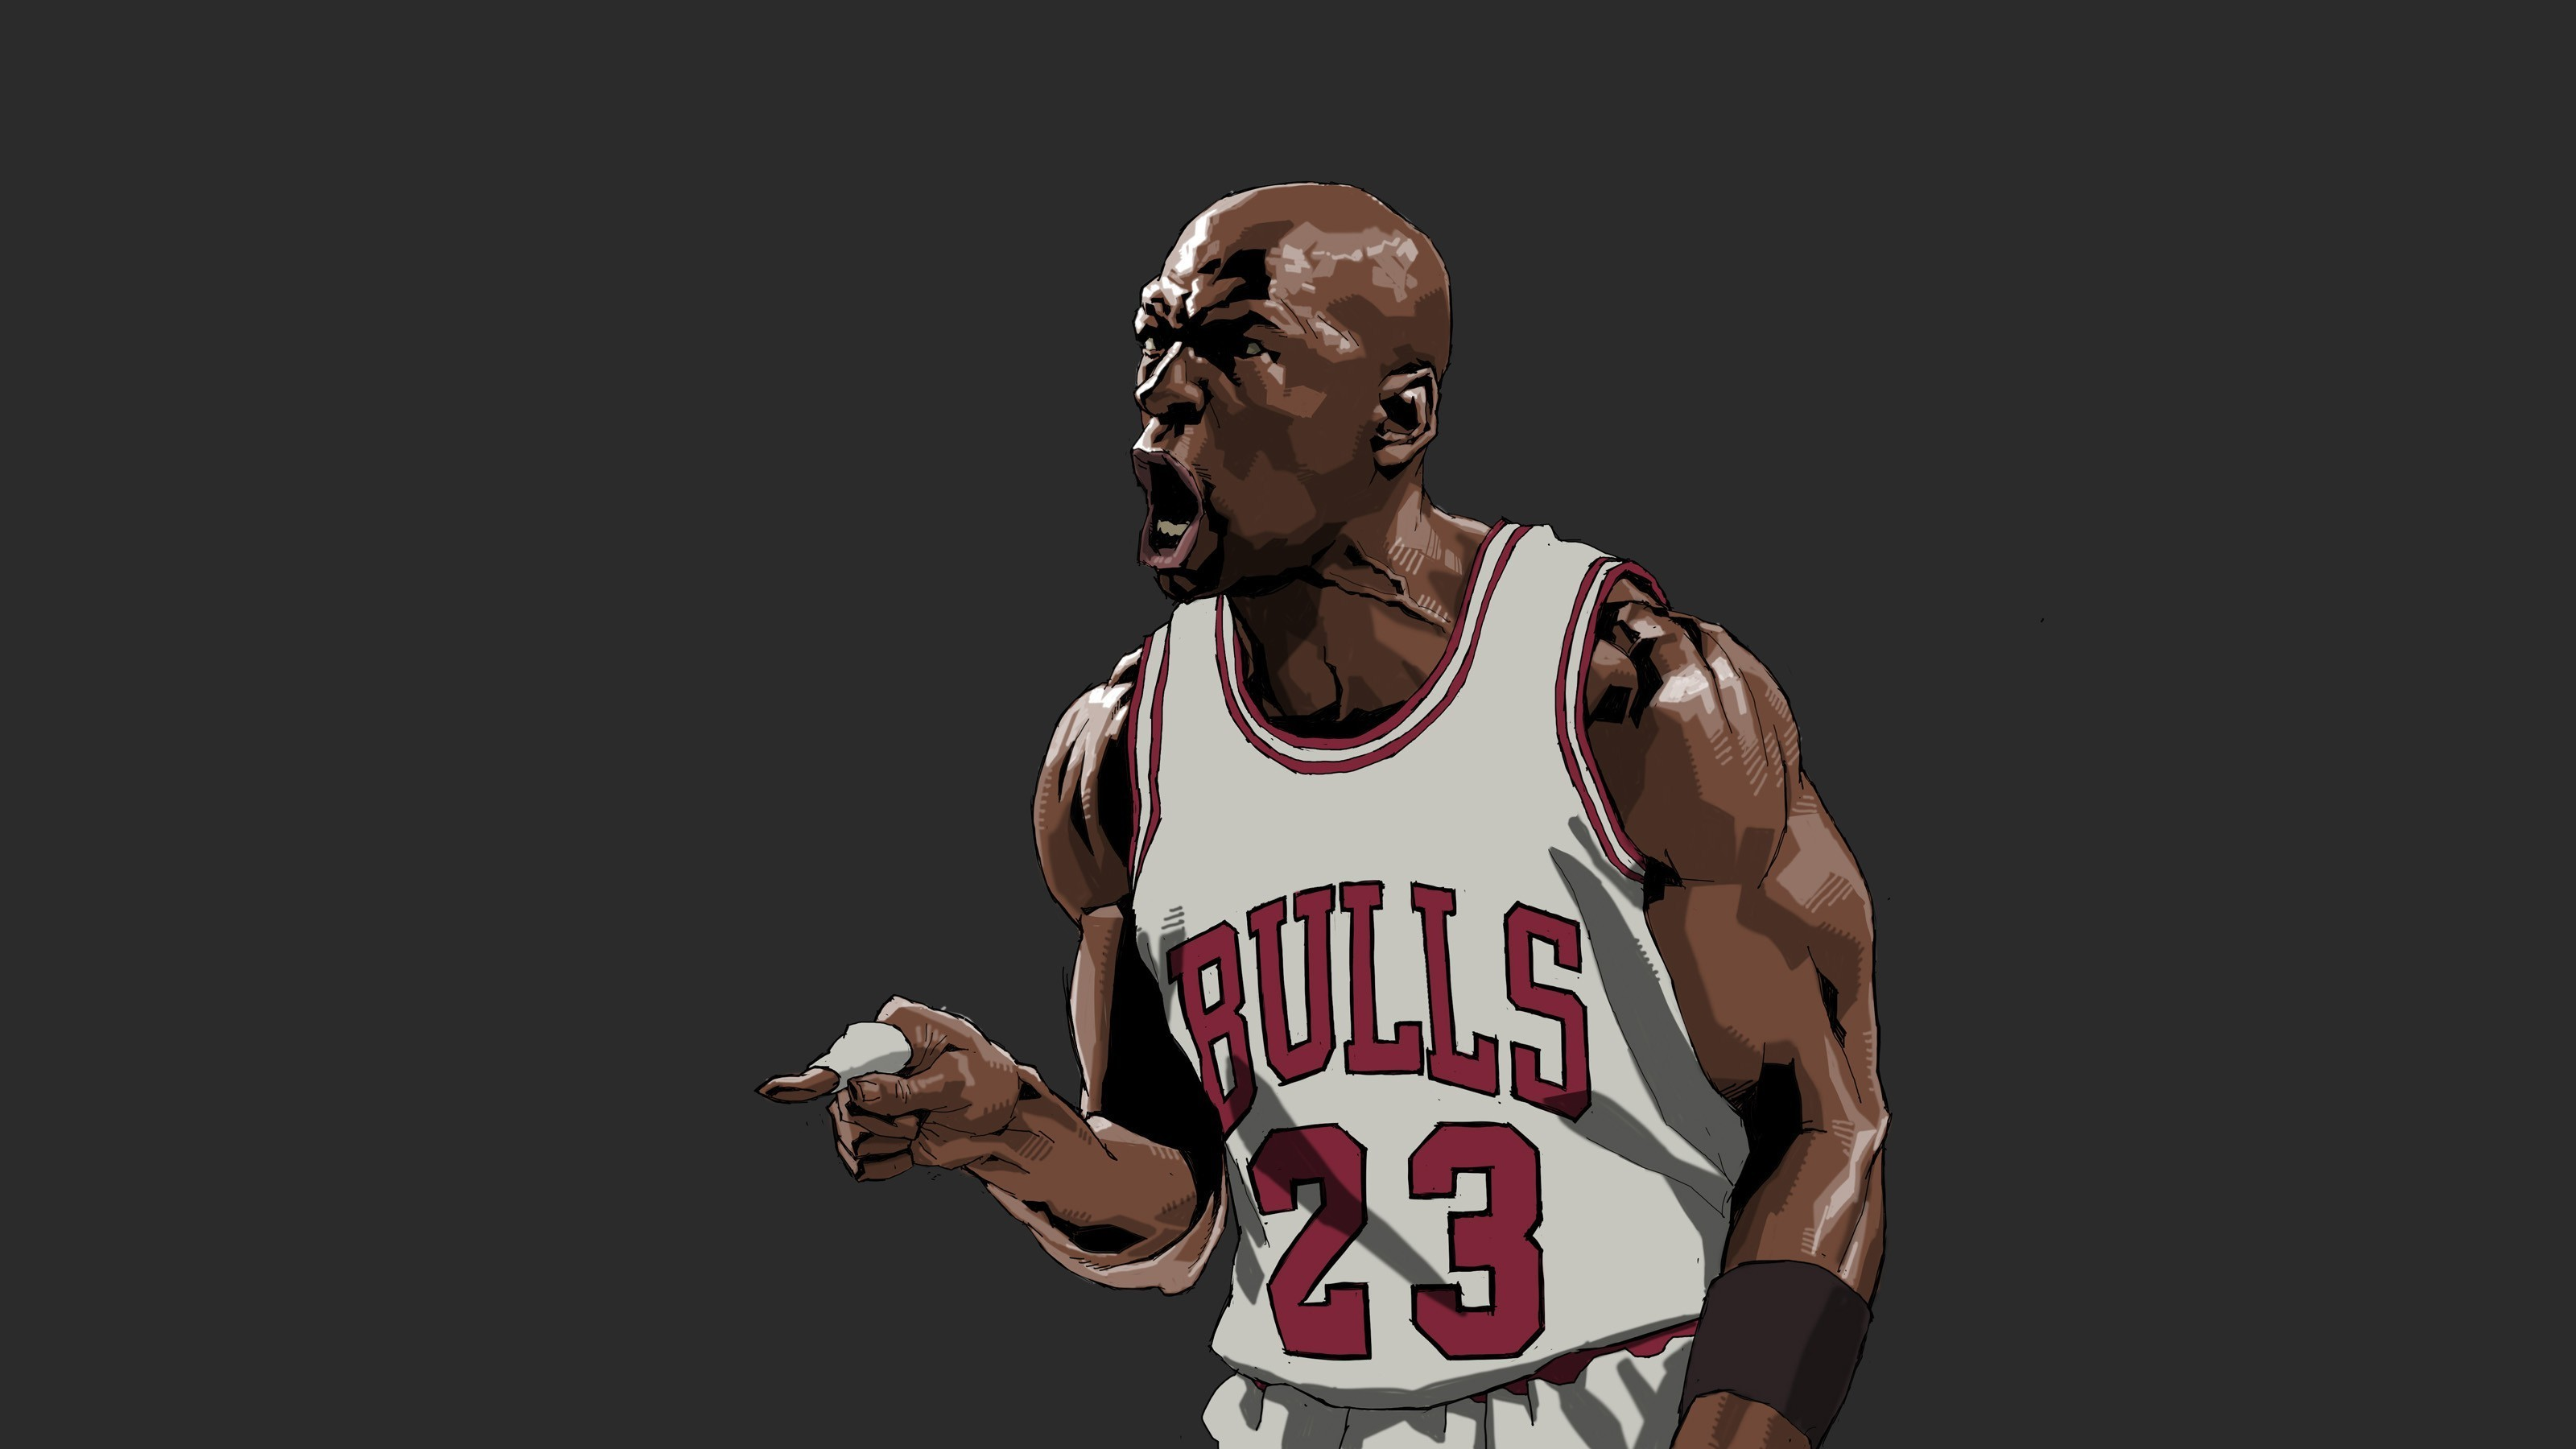 3200x1800 - Michael Jordan Wallpapers 1